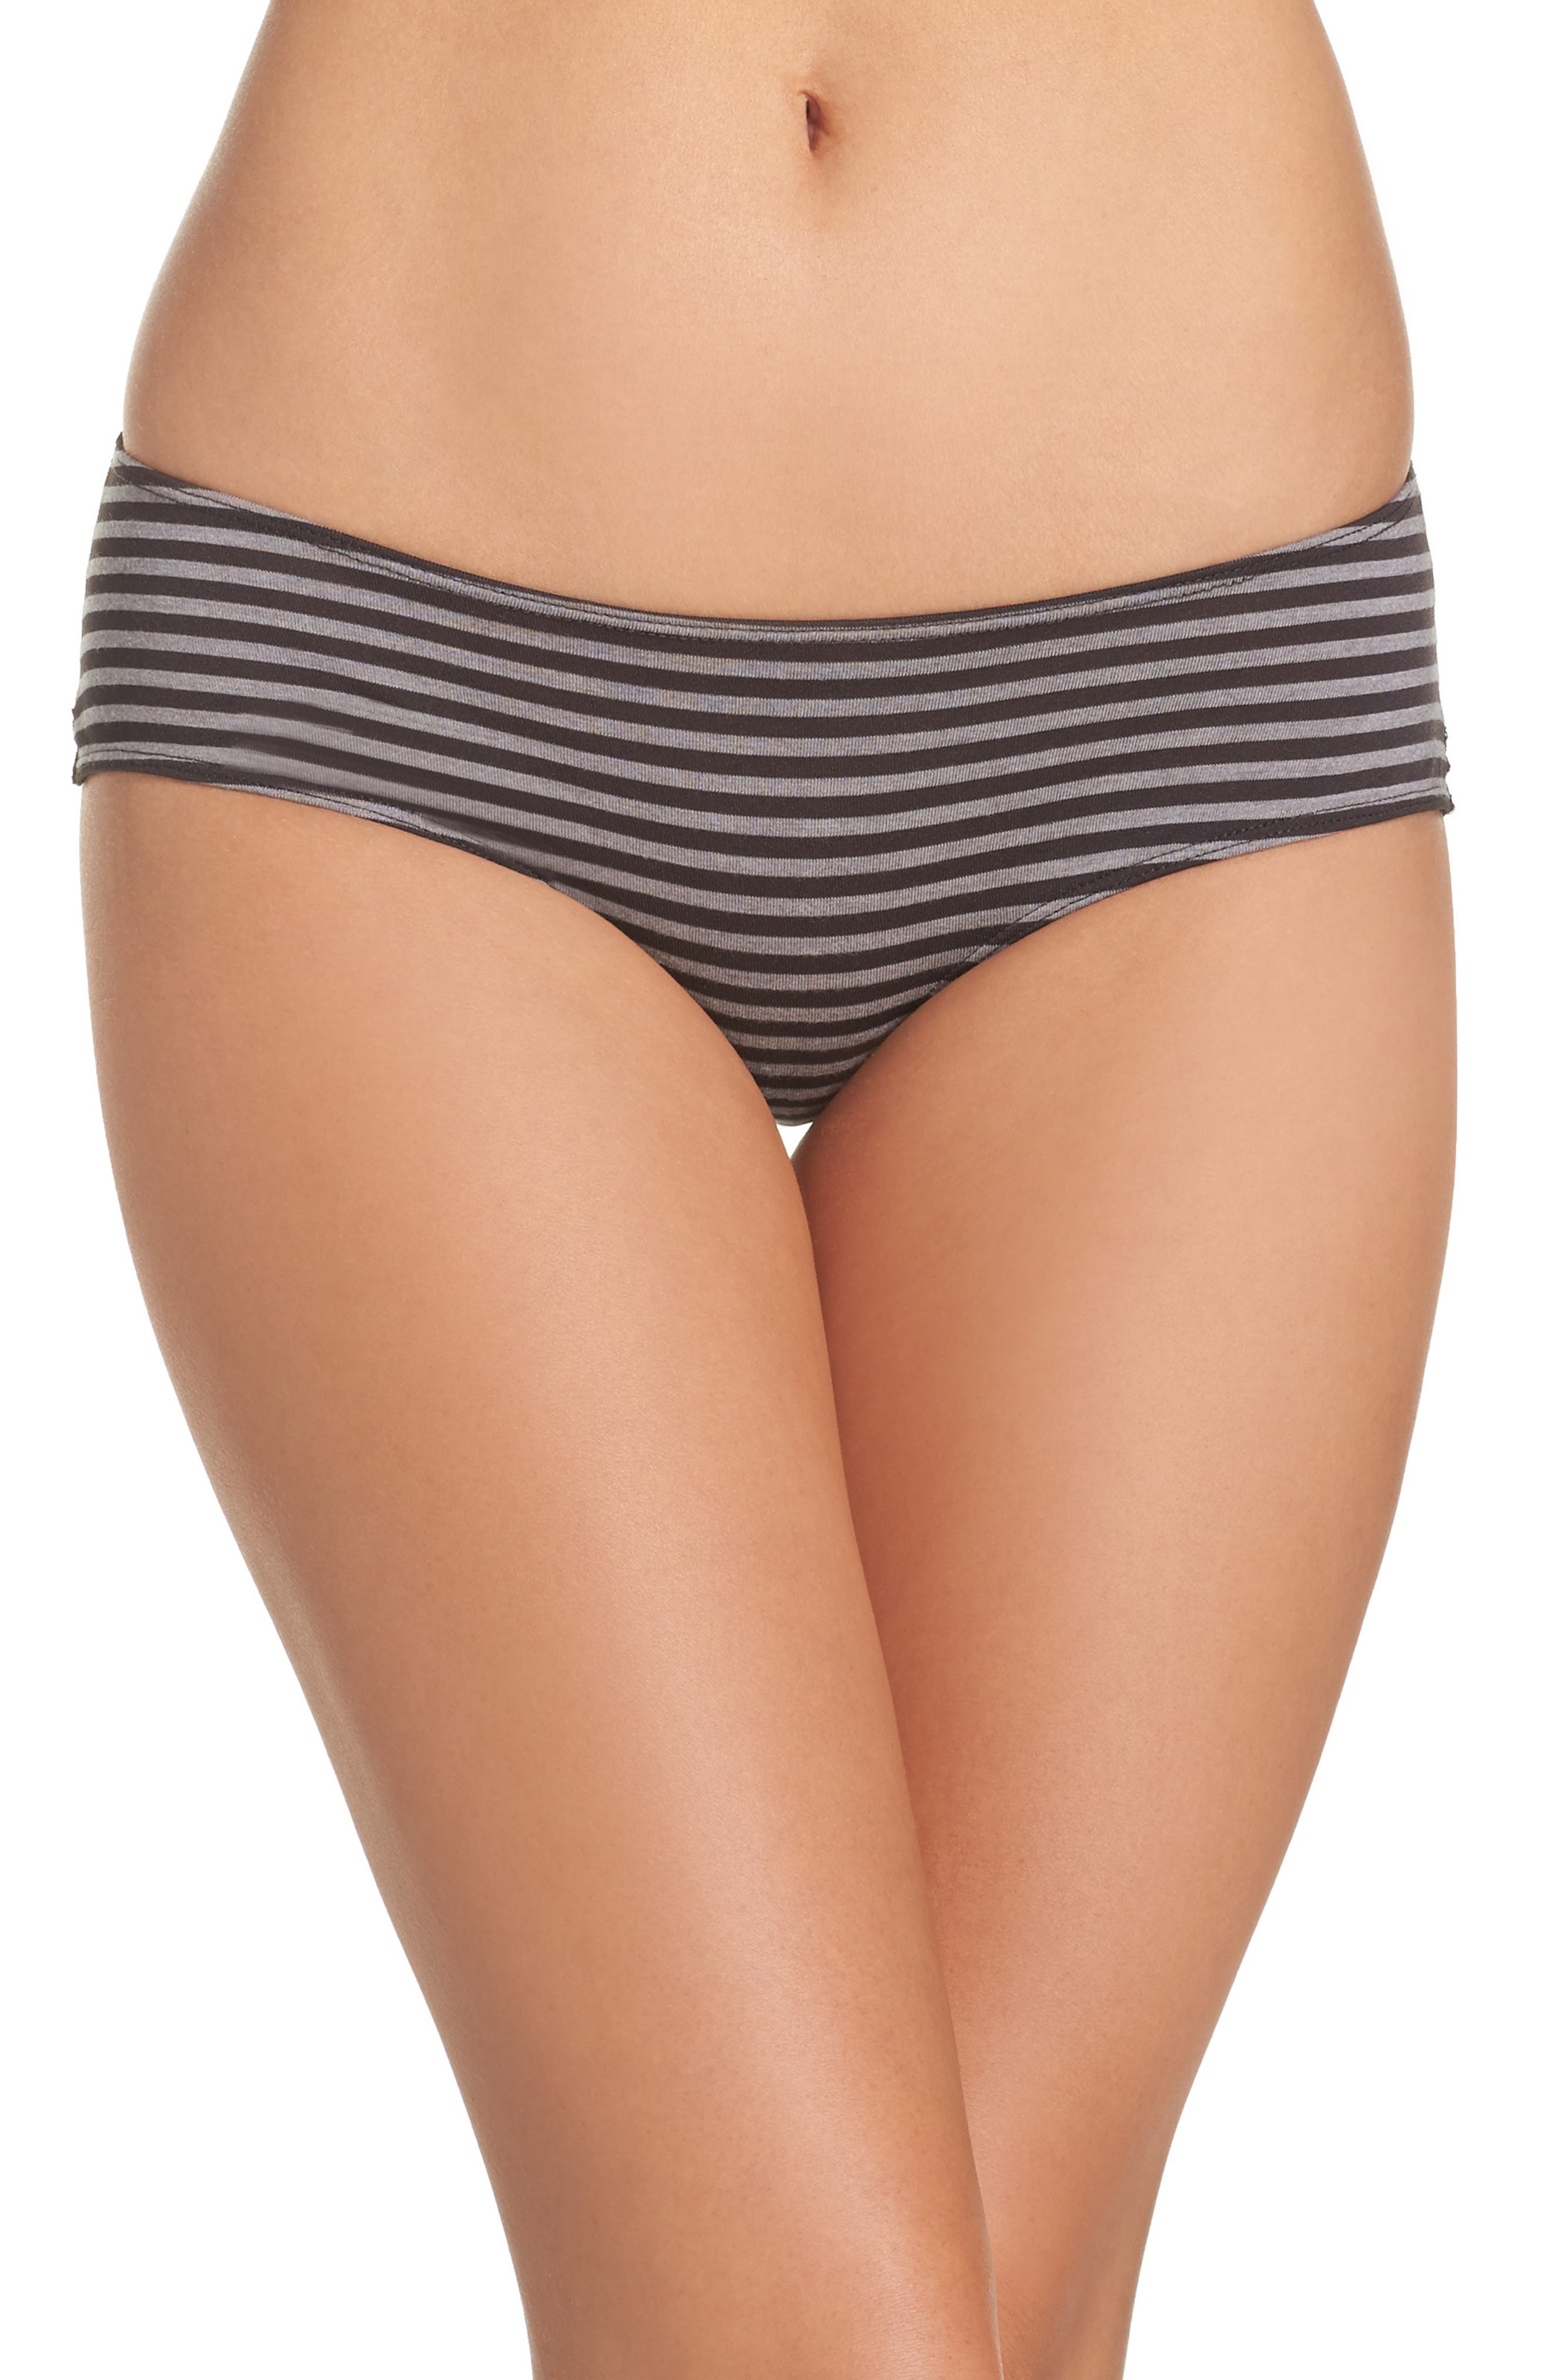 Free People Intimately FP Started Something Panties (3 for $33)